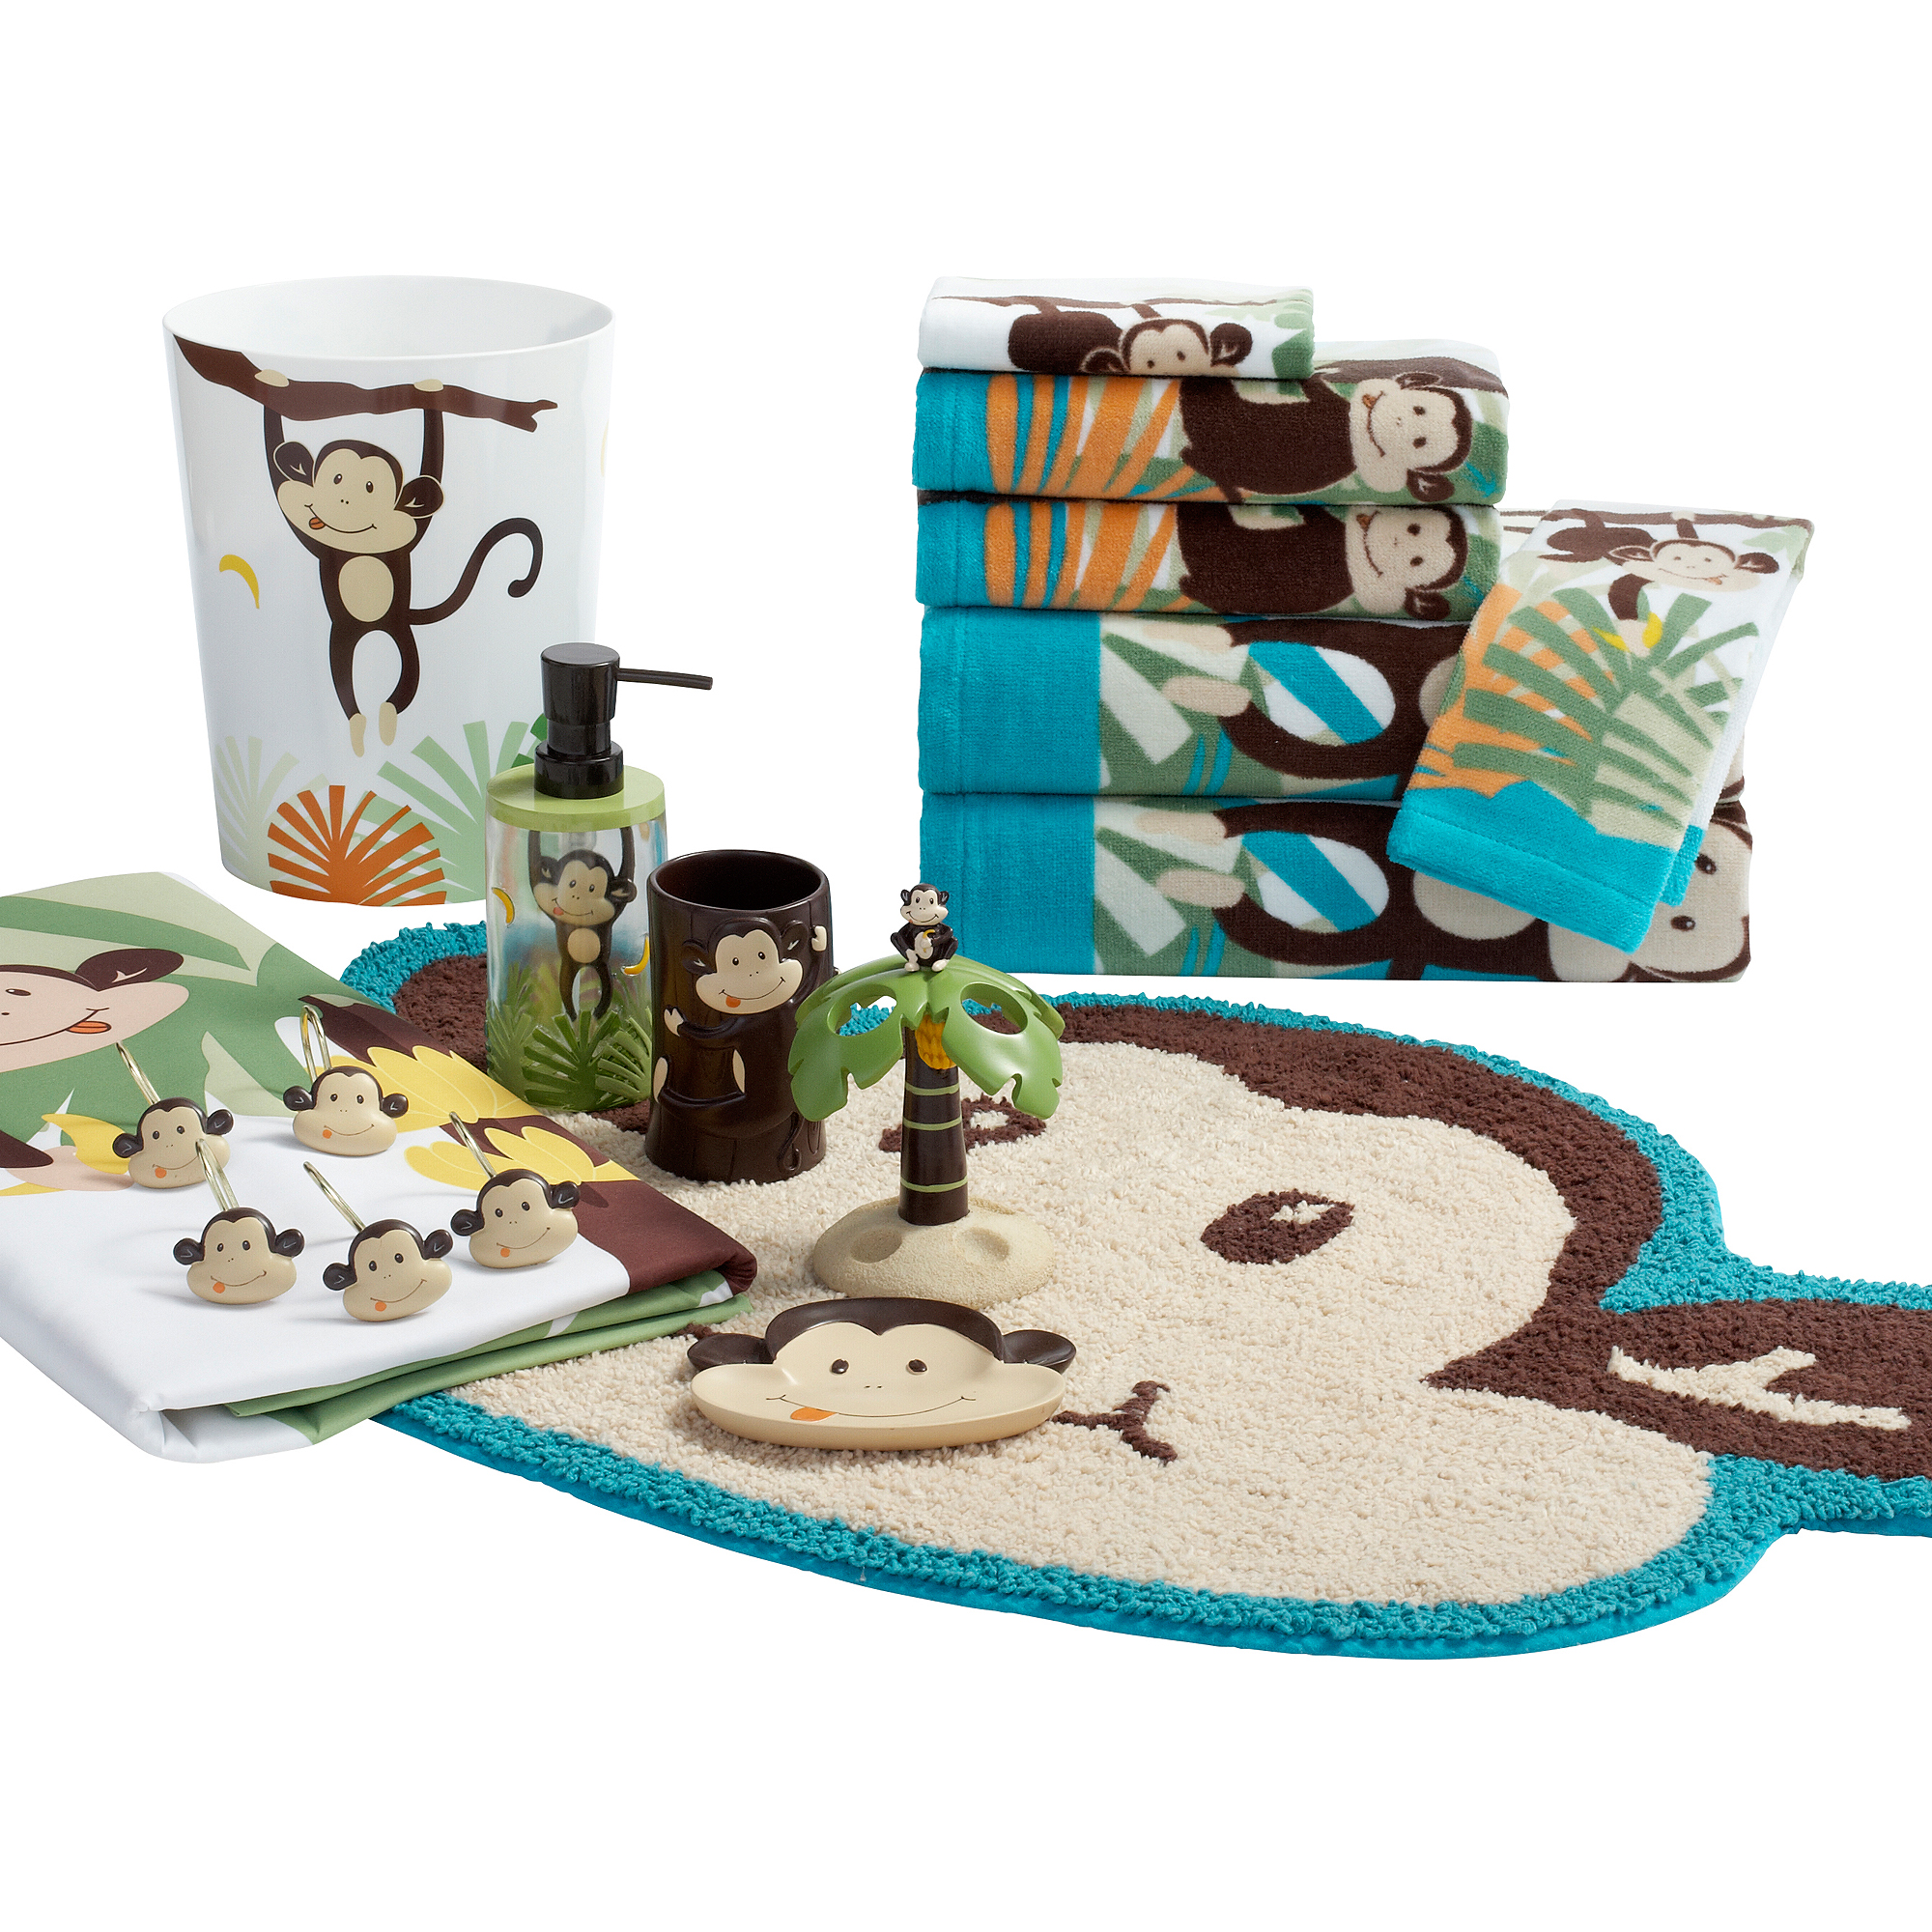 Mainstays Monkey Decorative Bath Towel Collection